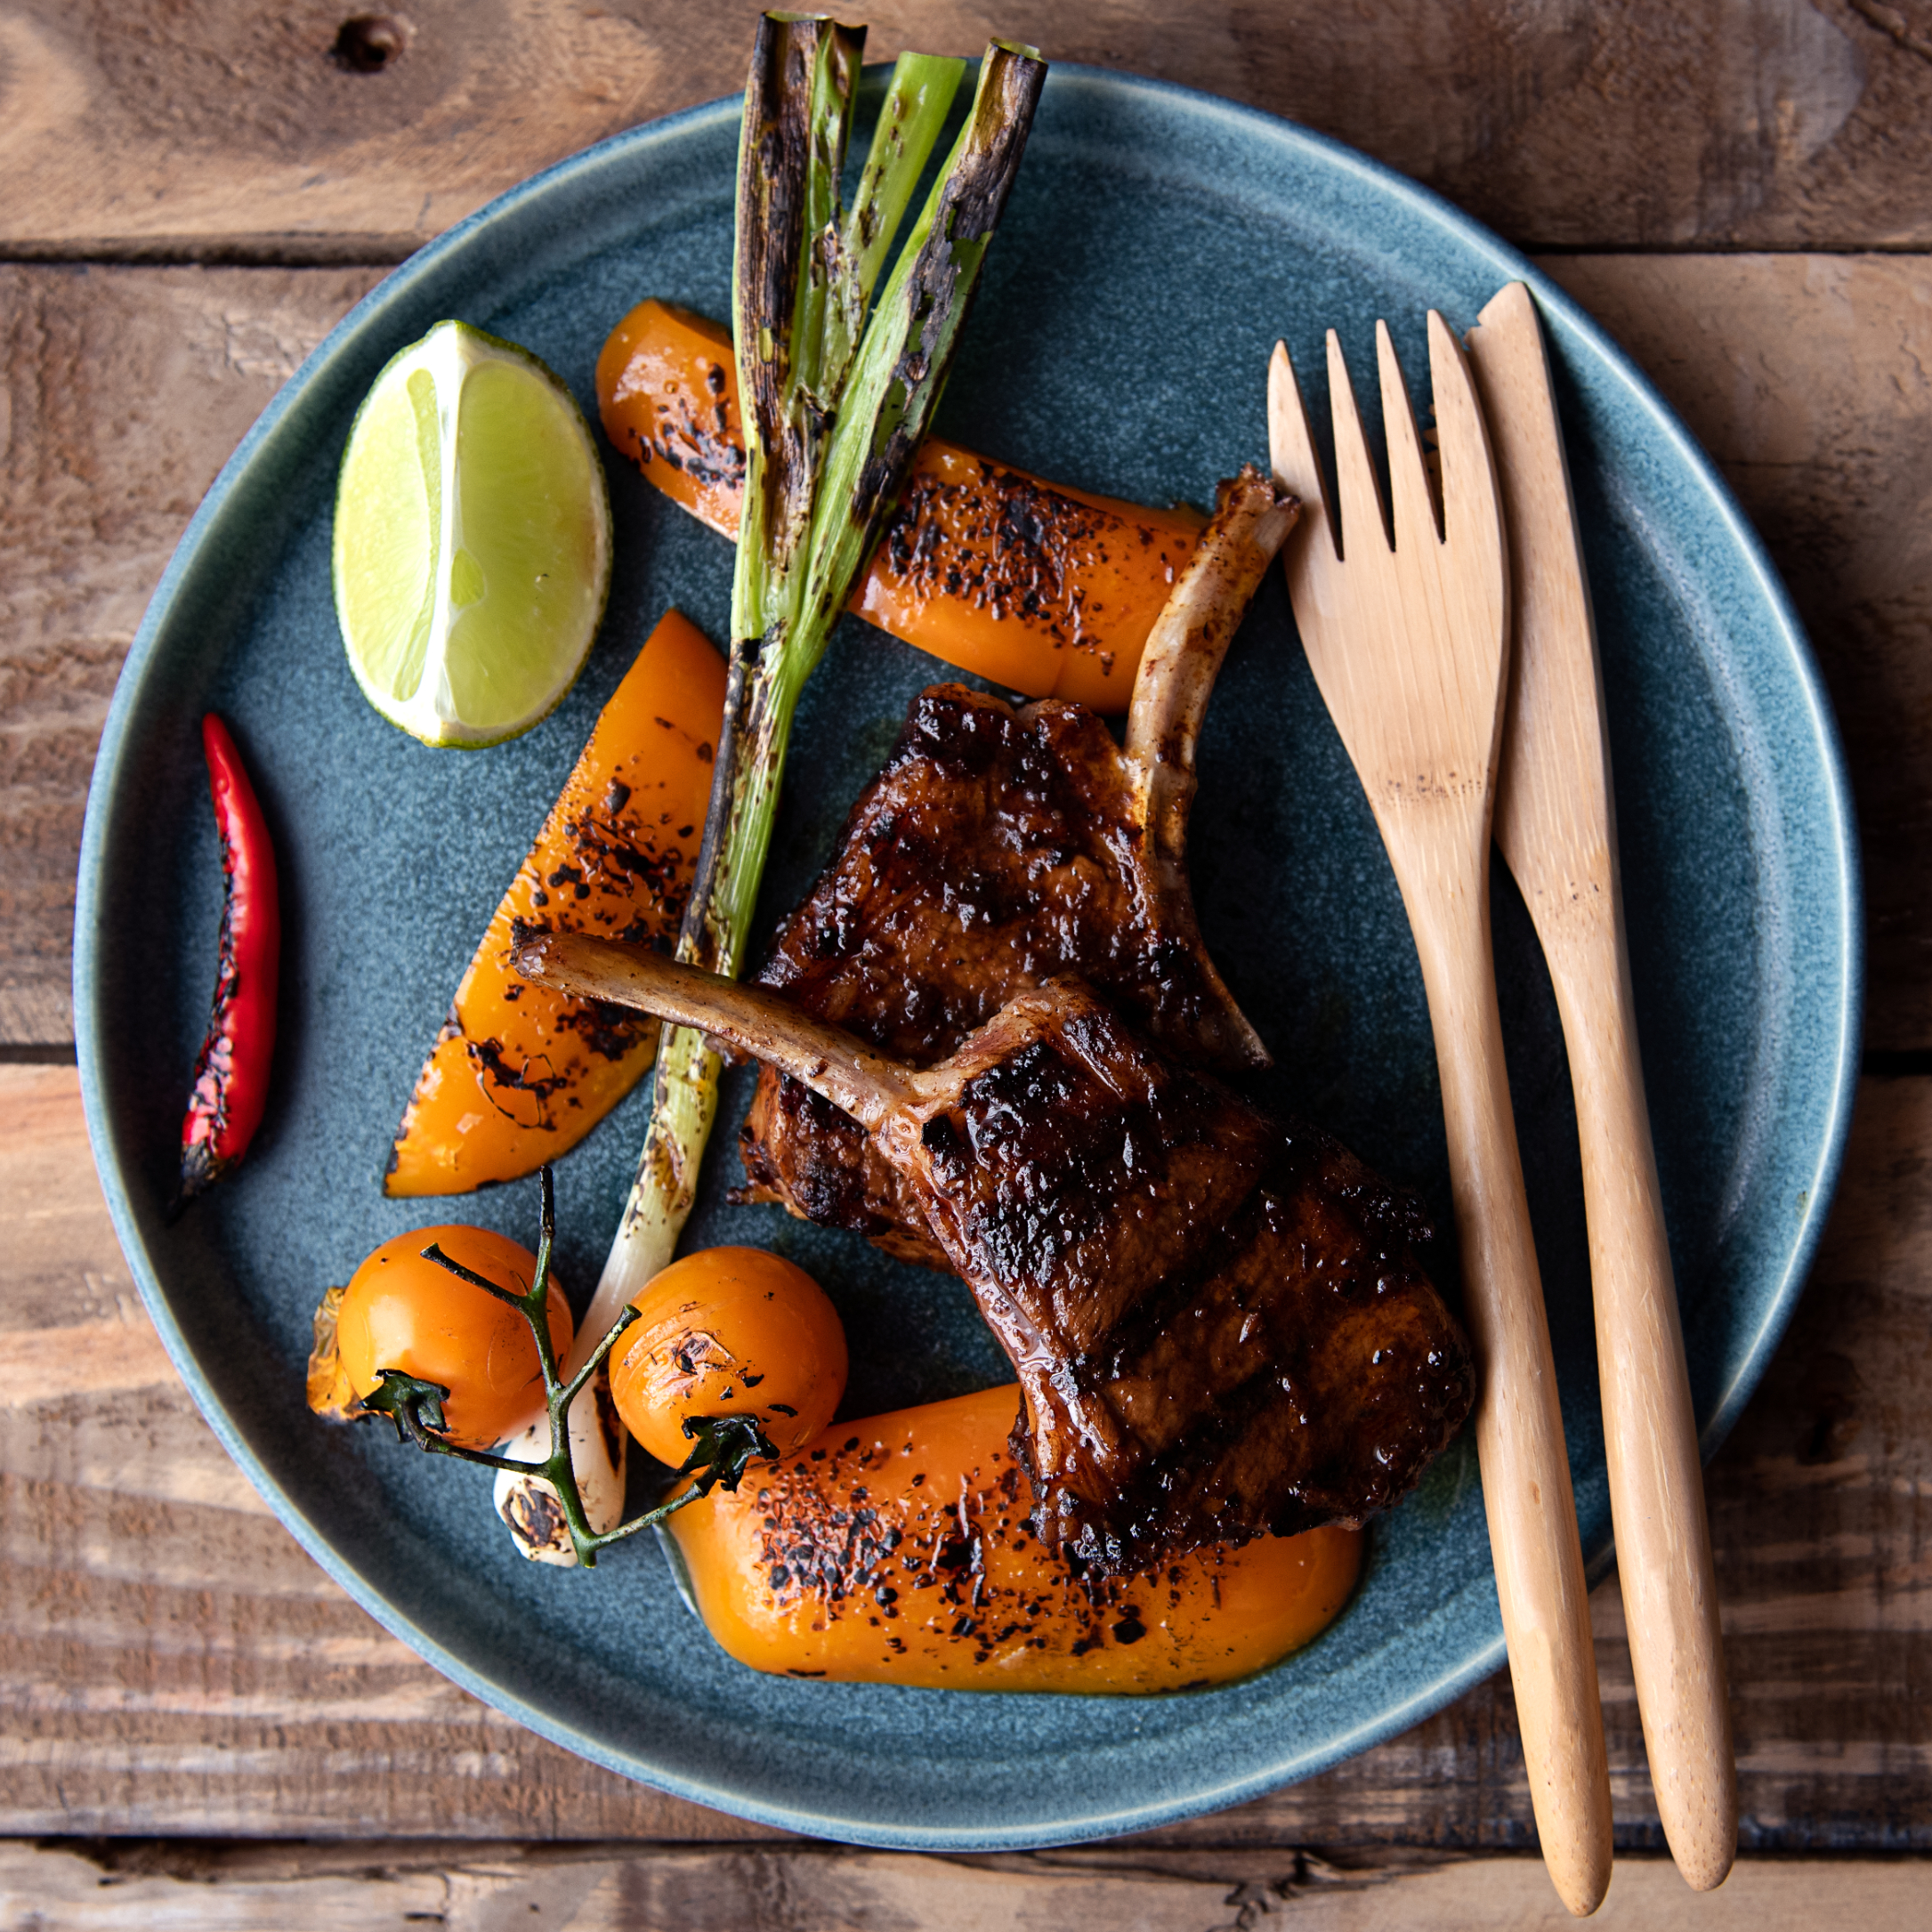 How To Cook Mexican Grilled Lamb Cutlets With Chipotle Mayo